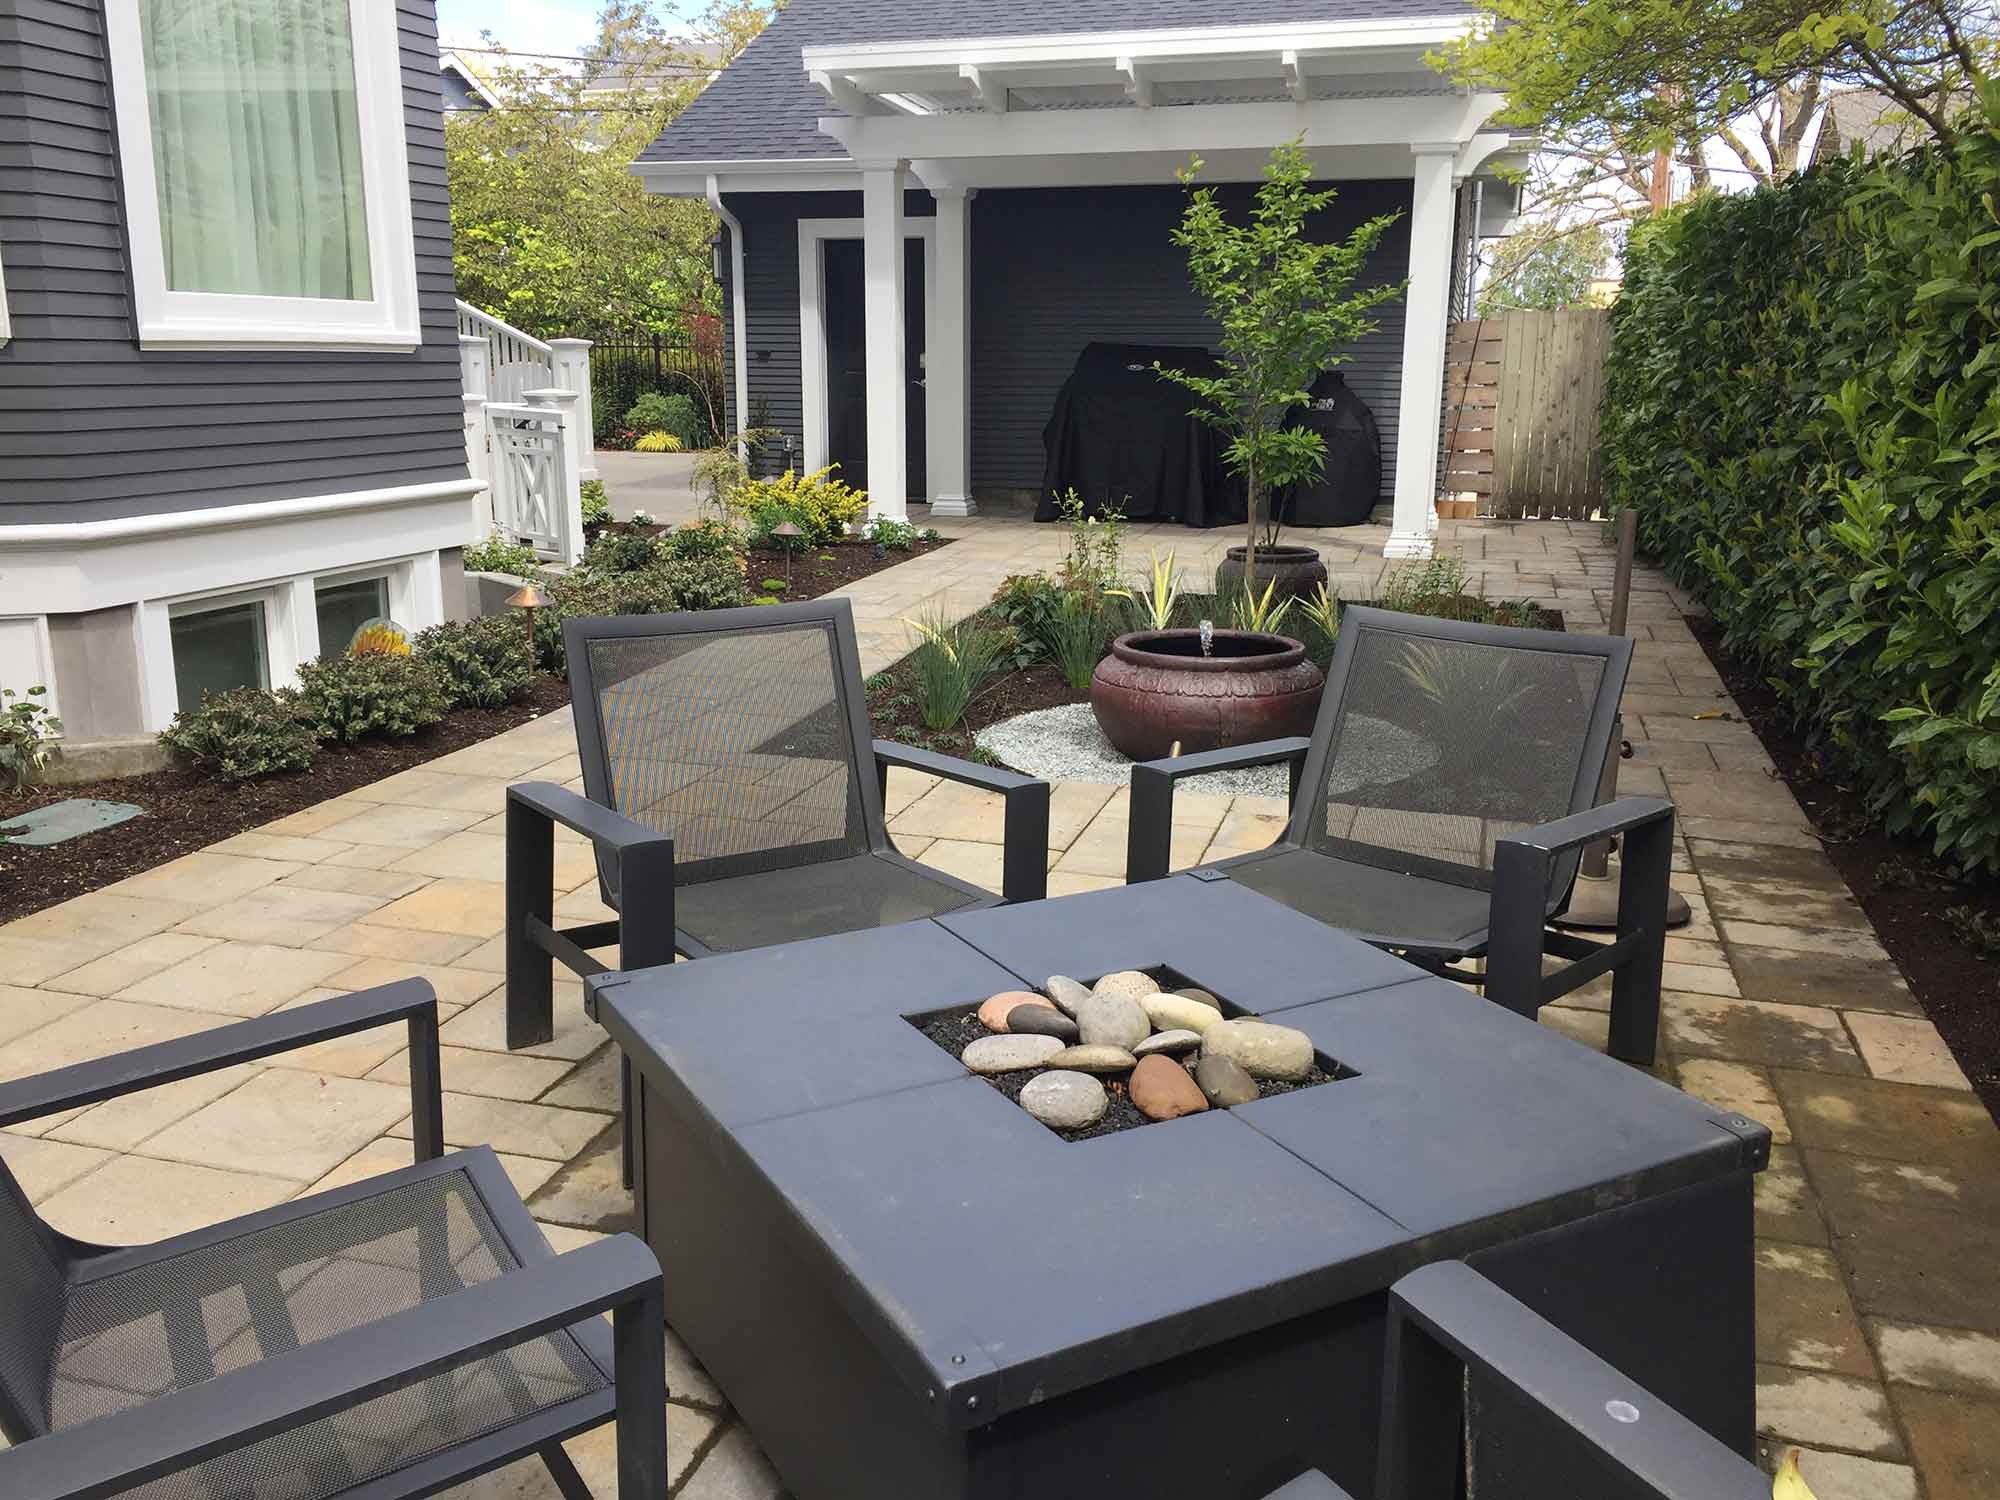 BACK YARD PATIO AND FIREPIT